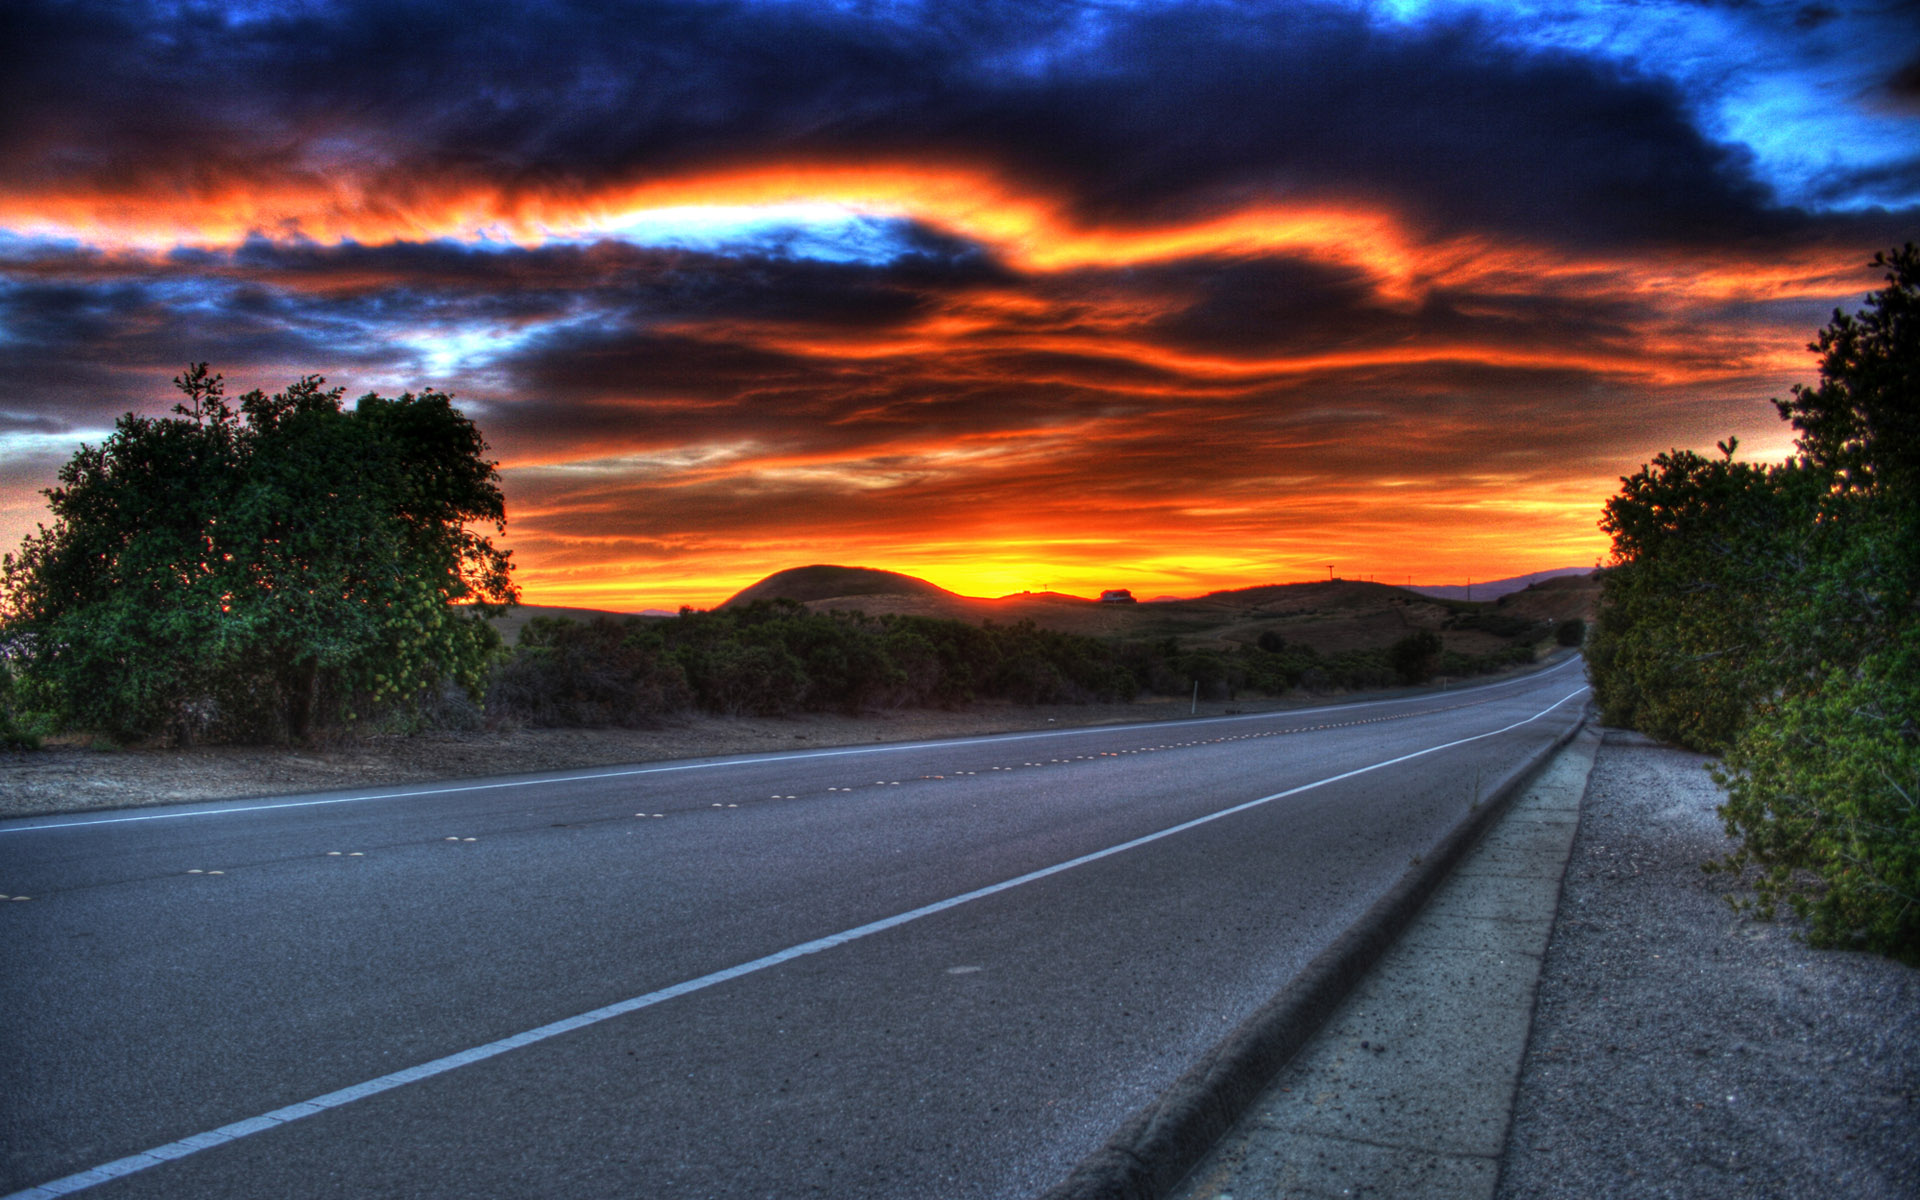 road background images - photo #21